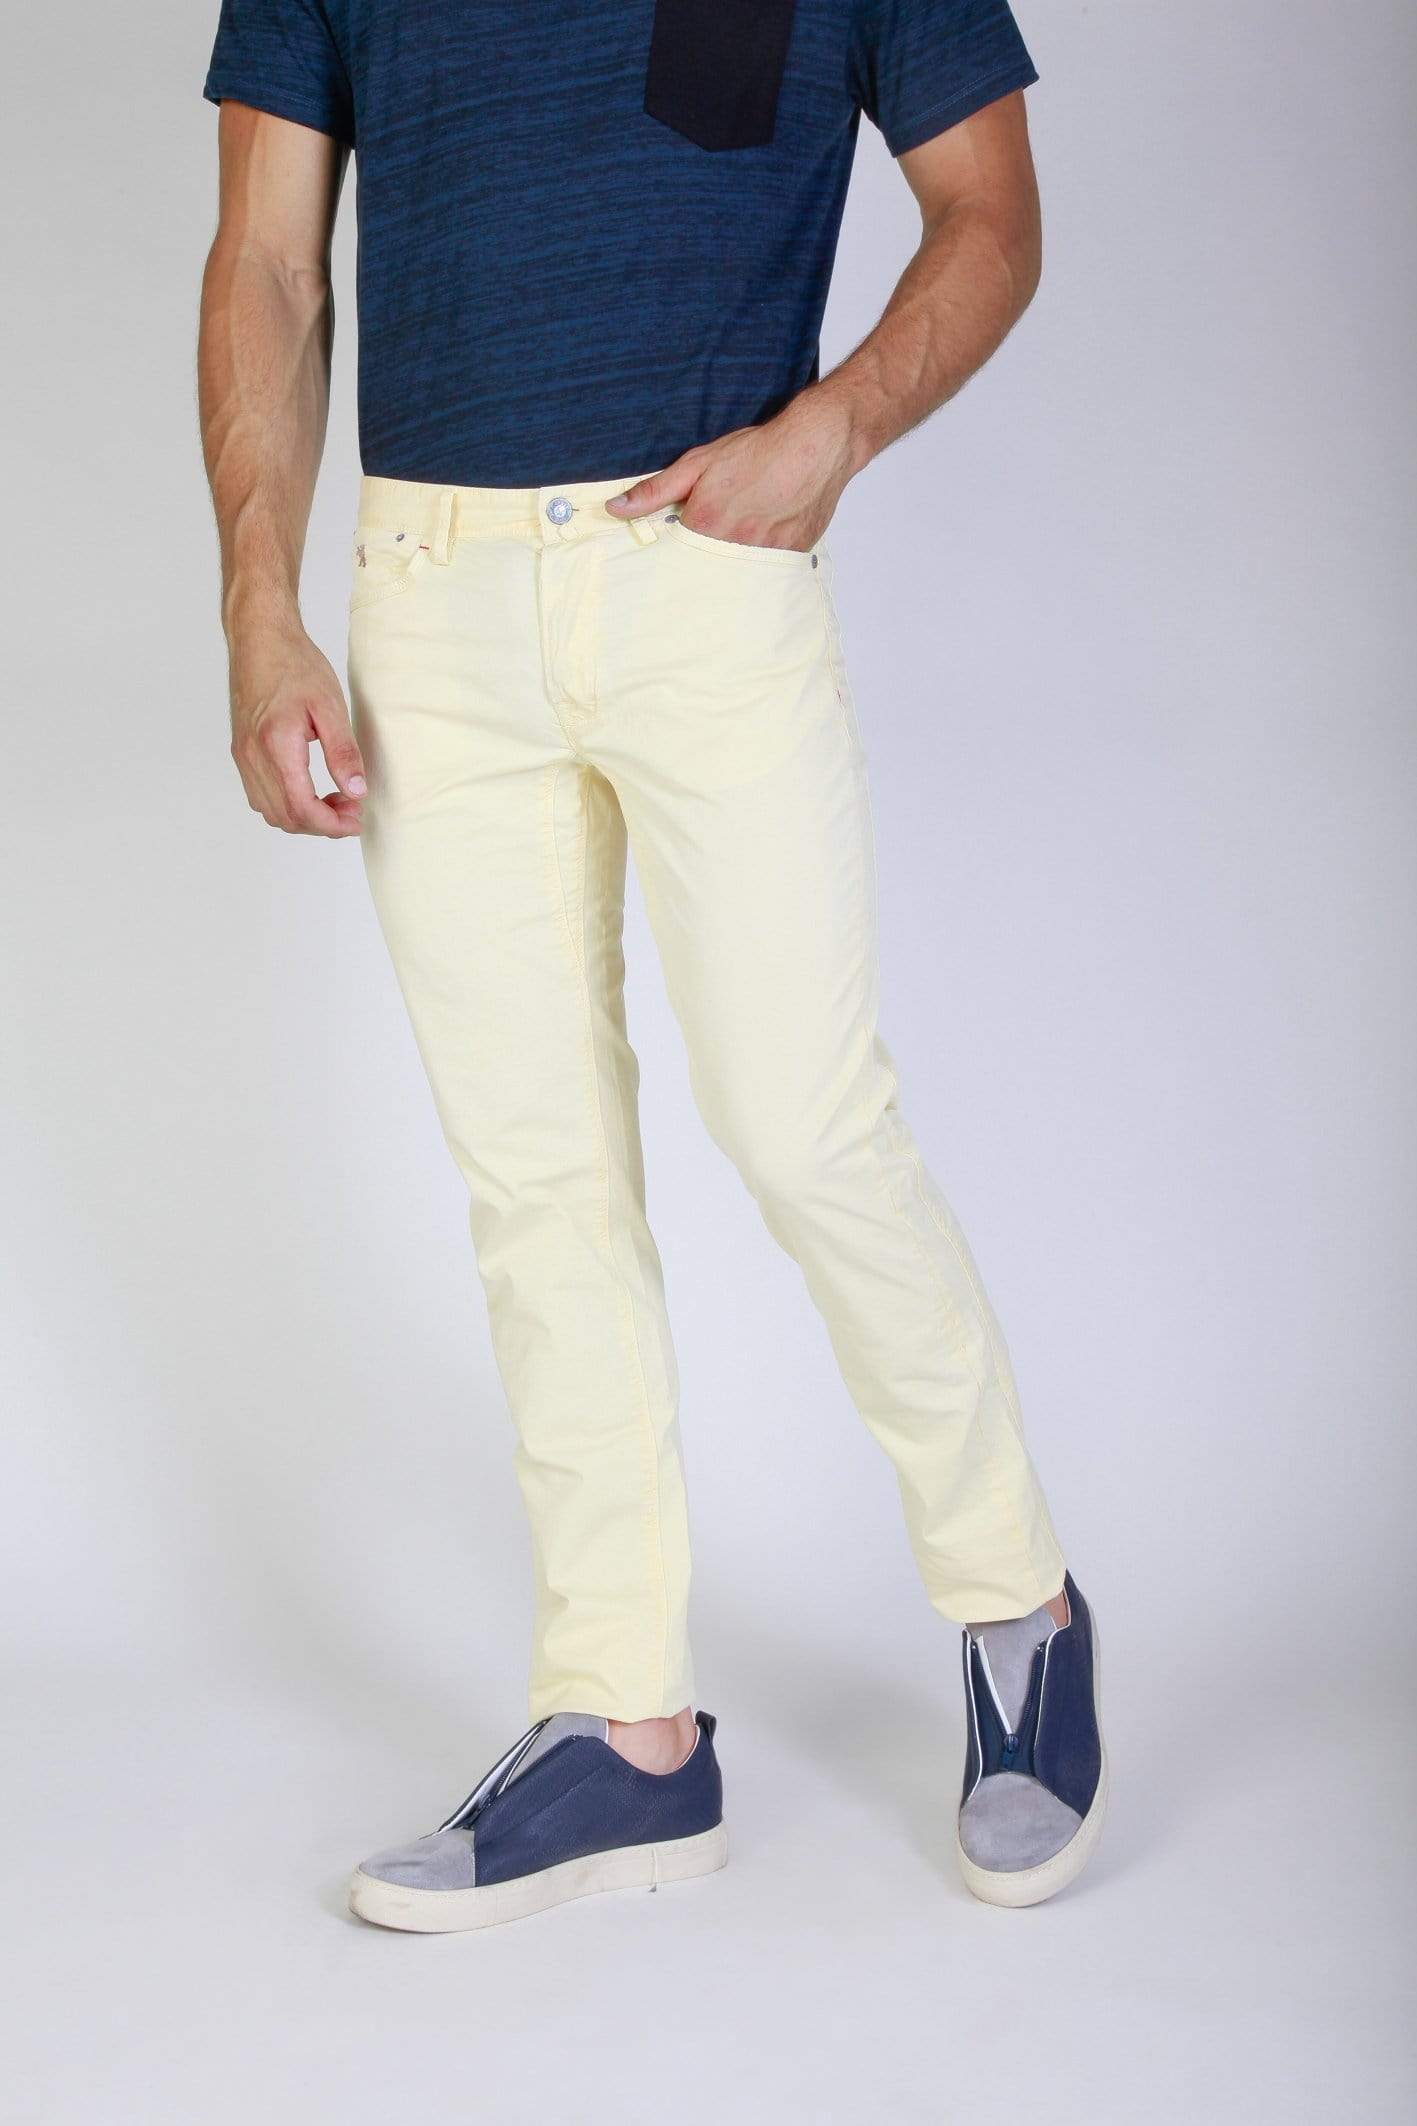 Jaggy Clothing Trousers yellow / 29 Jaggy - J1883T812-Q1